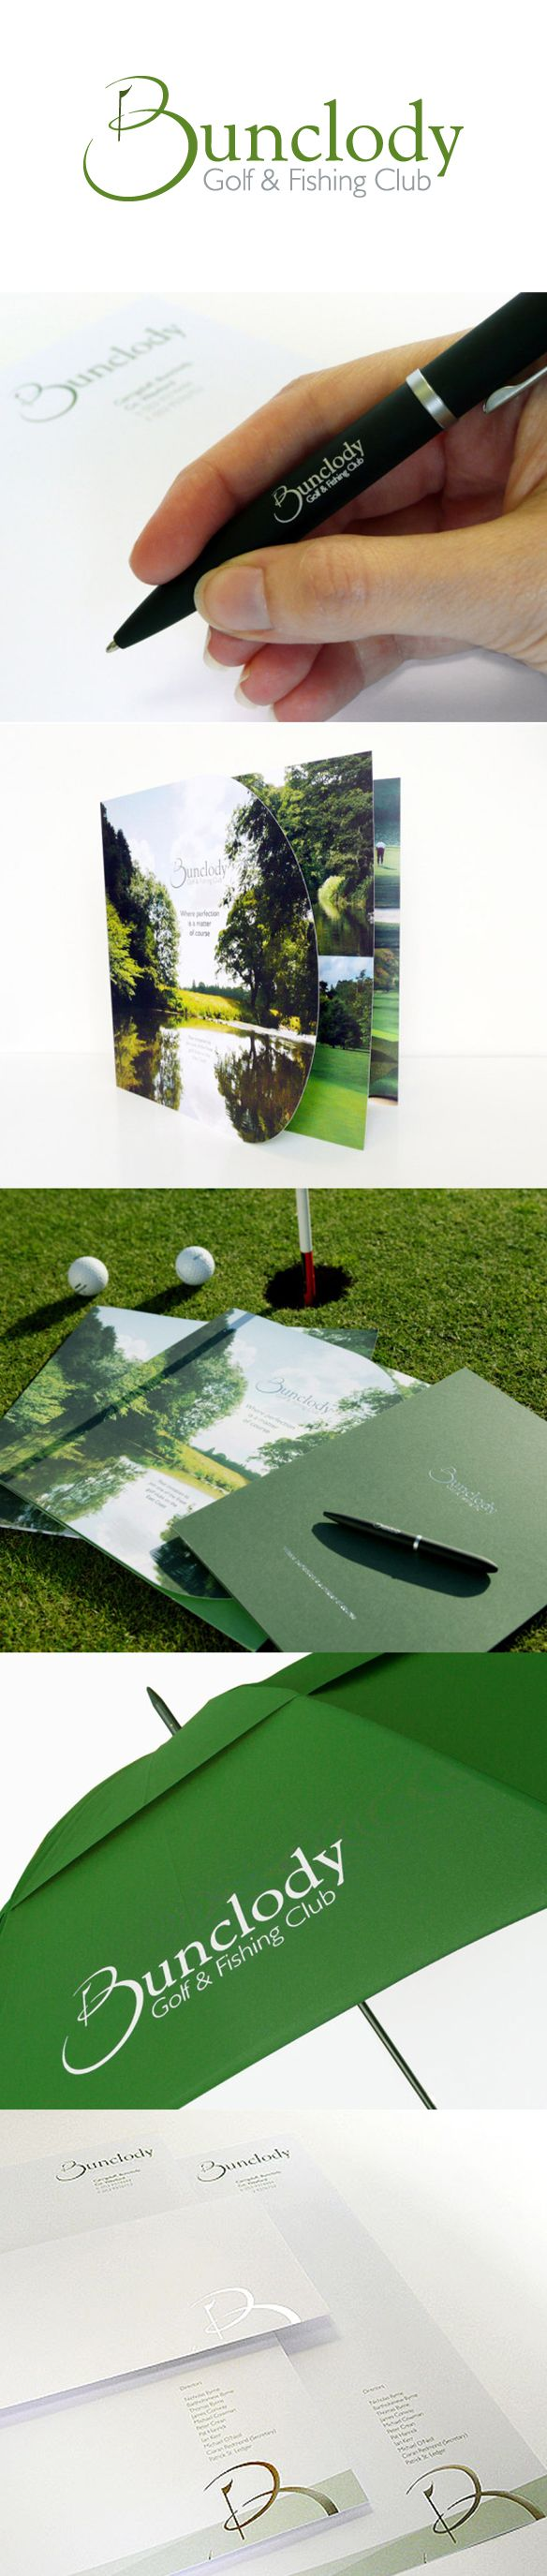 Bunclody Golf & Fishing Club - Identity, Stationery, Brochure and Bespoke designs. www.akgraphics.ie